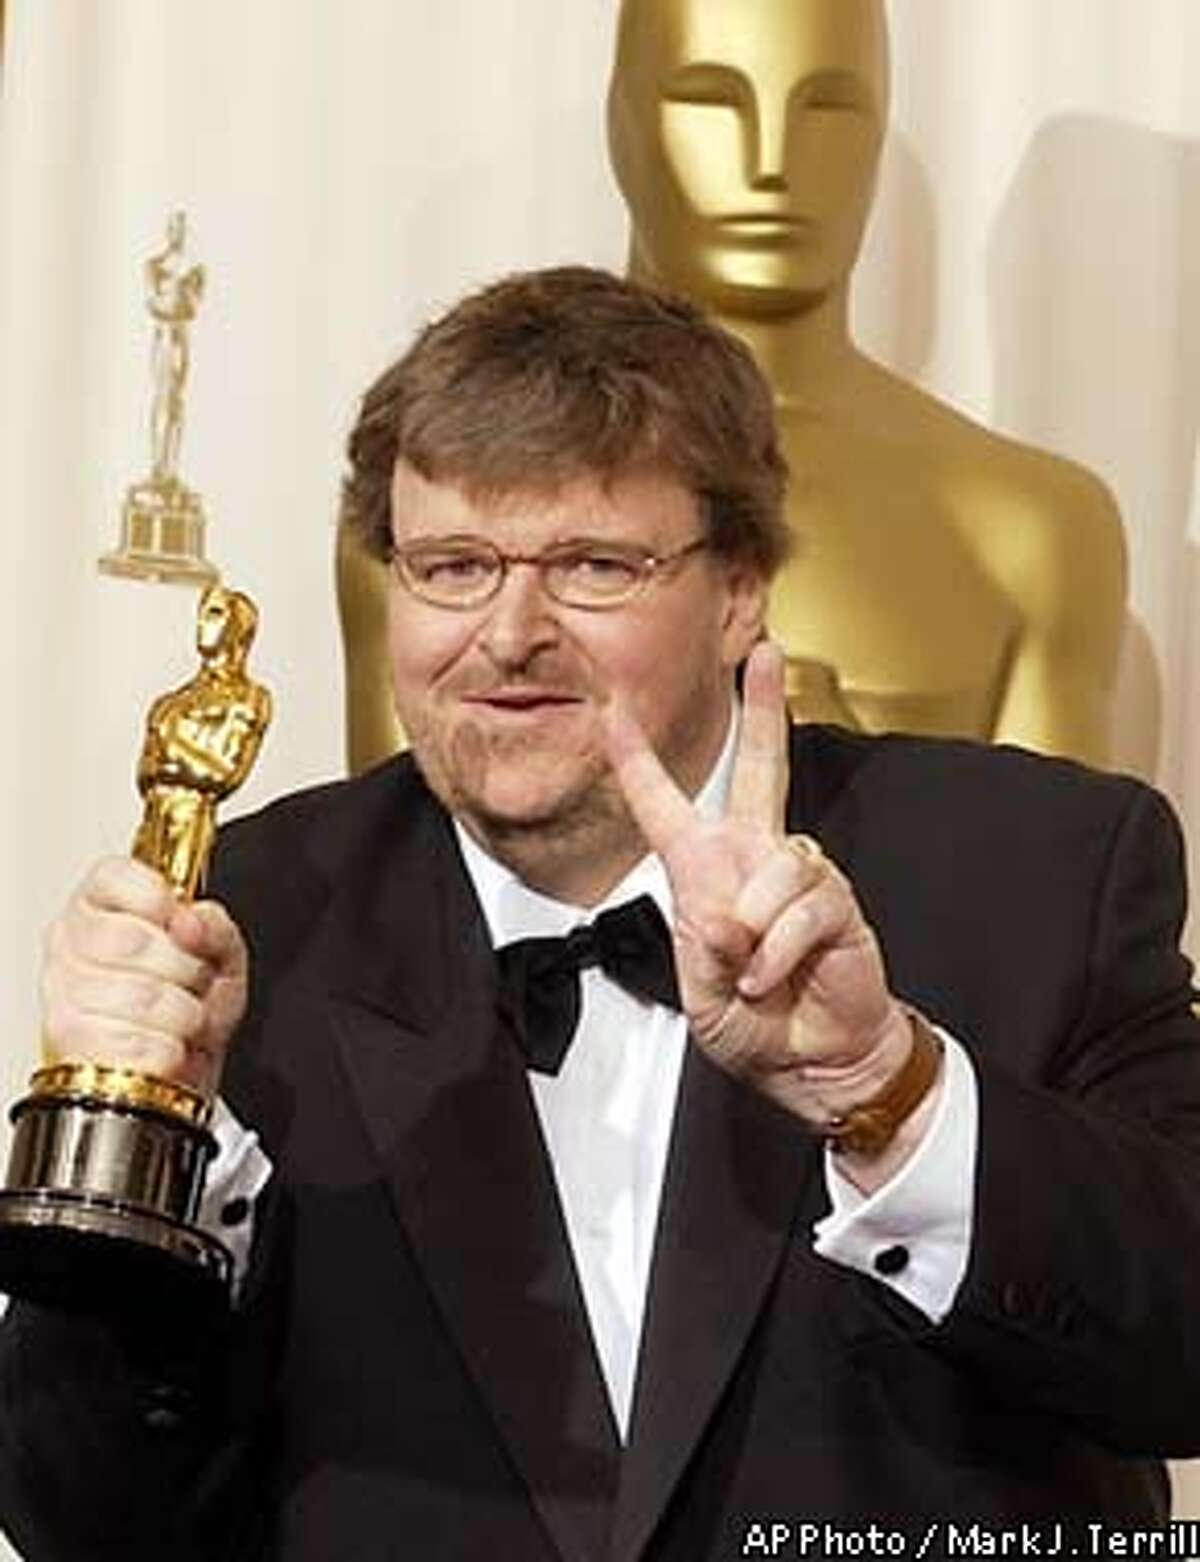 ** EMBARGOED AT THE REQUEST OF THE MOTION PICTURE ACADEMY FOR USE UPON CONCLUSION OF ACADEMY AWARDS TELECAST ** Michael Moore flashes the peace sign as he poses with the won for best documentary feature for the film